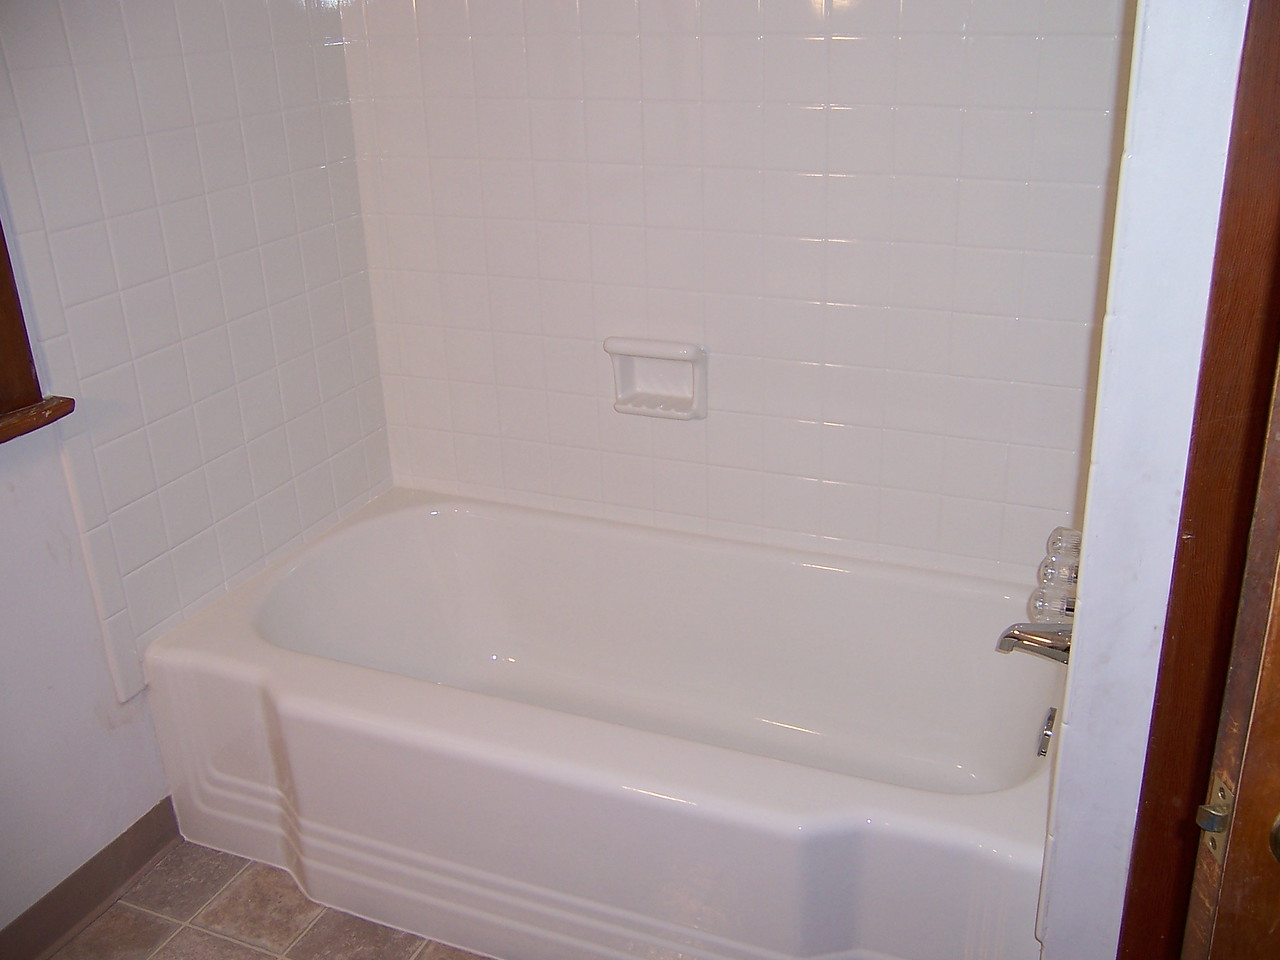 AFTER-   You can't see it but the tile goes to a ceiling above the tub. I couldn't get back far enough for a full view of the improvements.